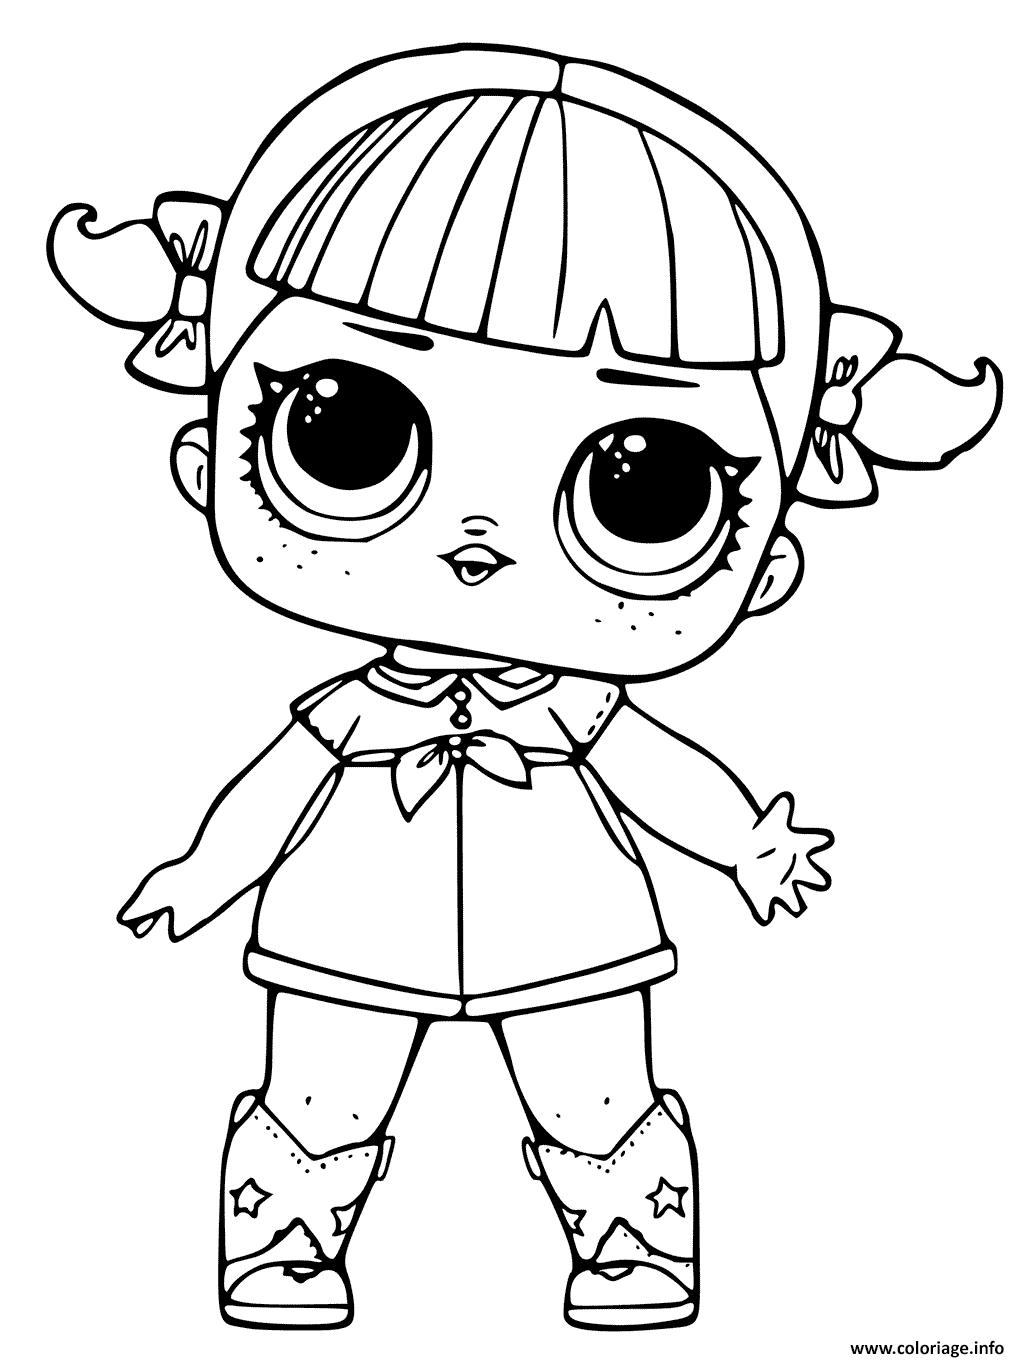 Coloriage Lol Surprise Dolls Jecolorie Com